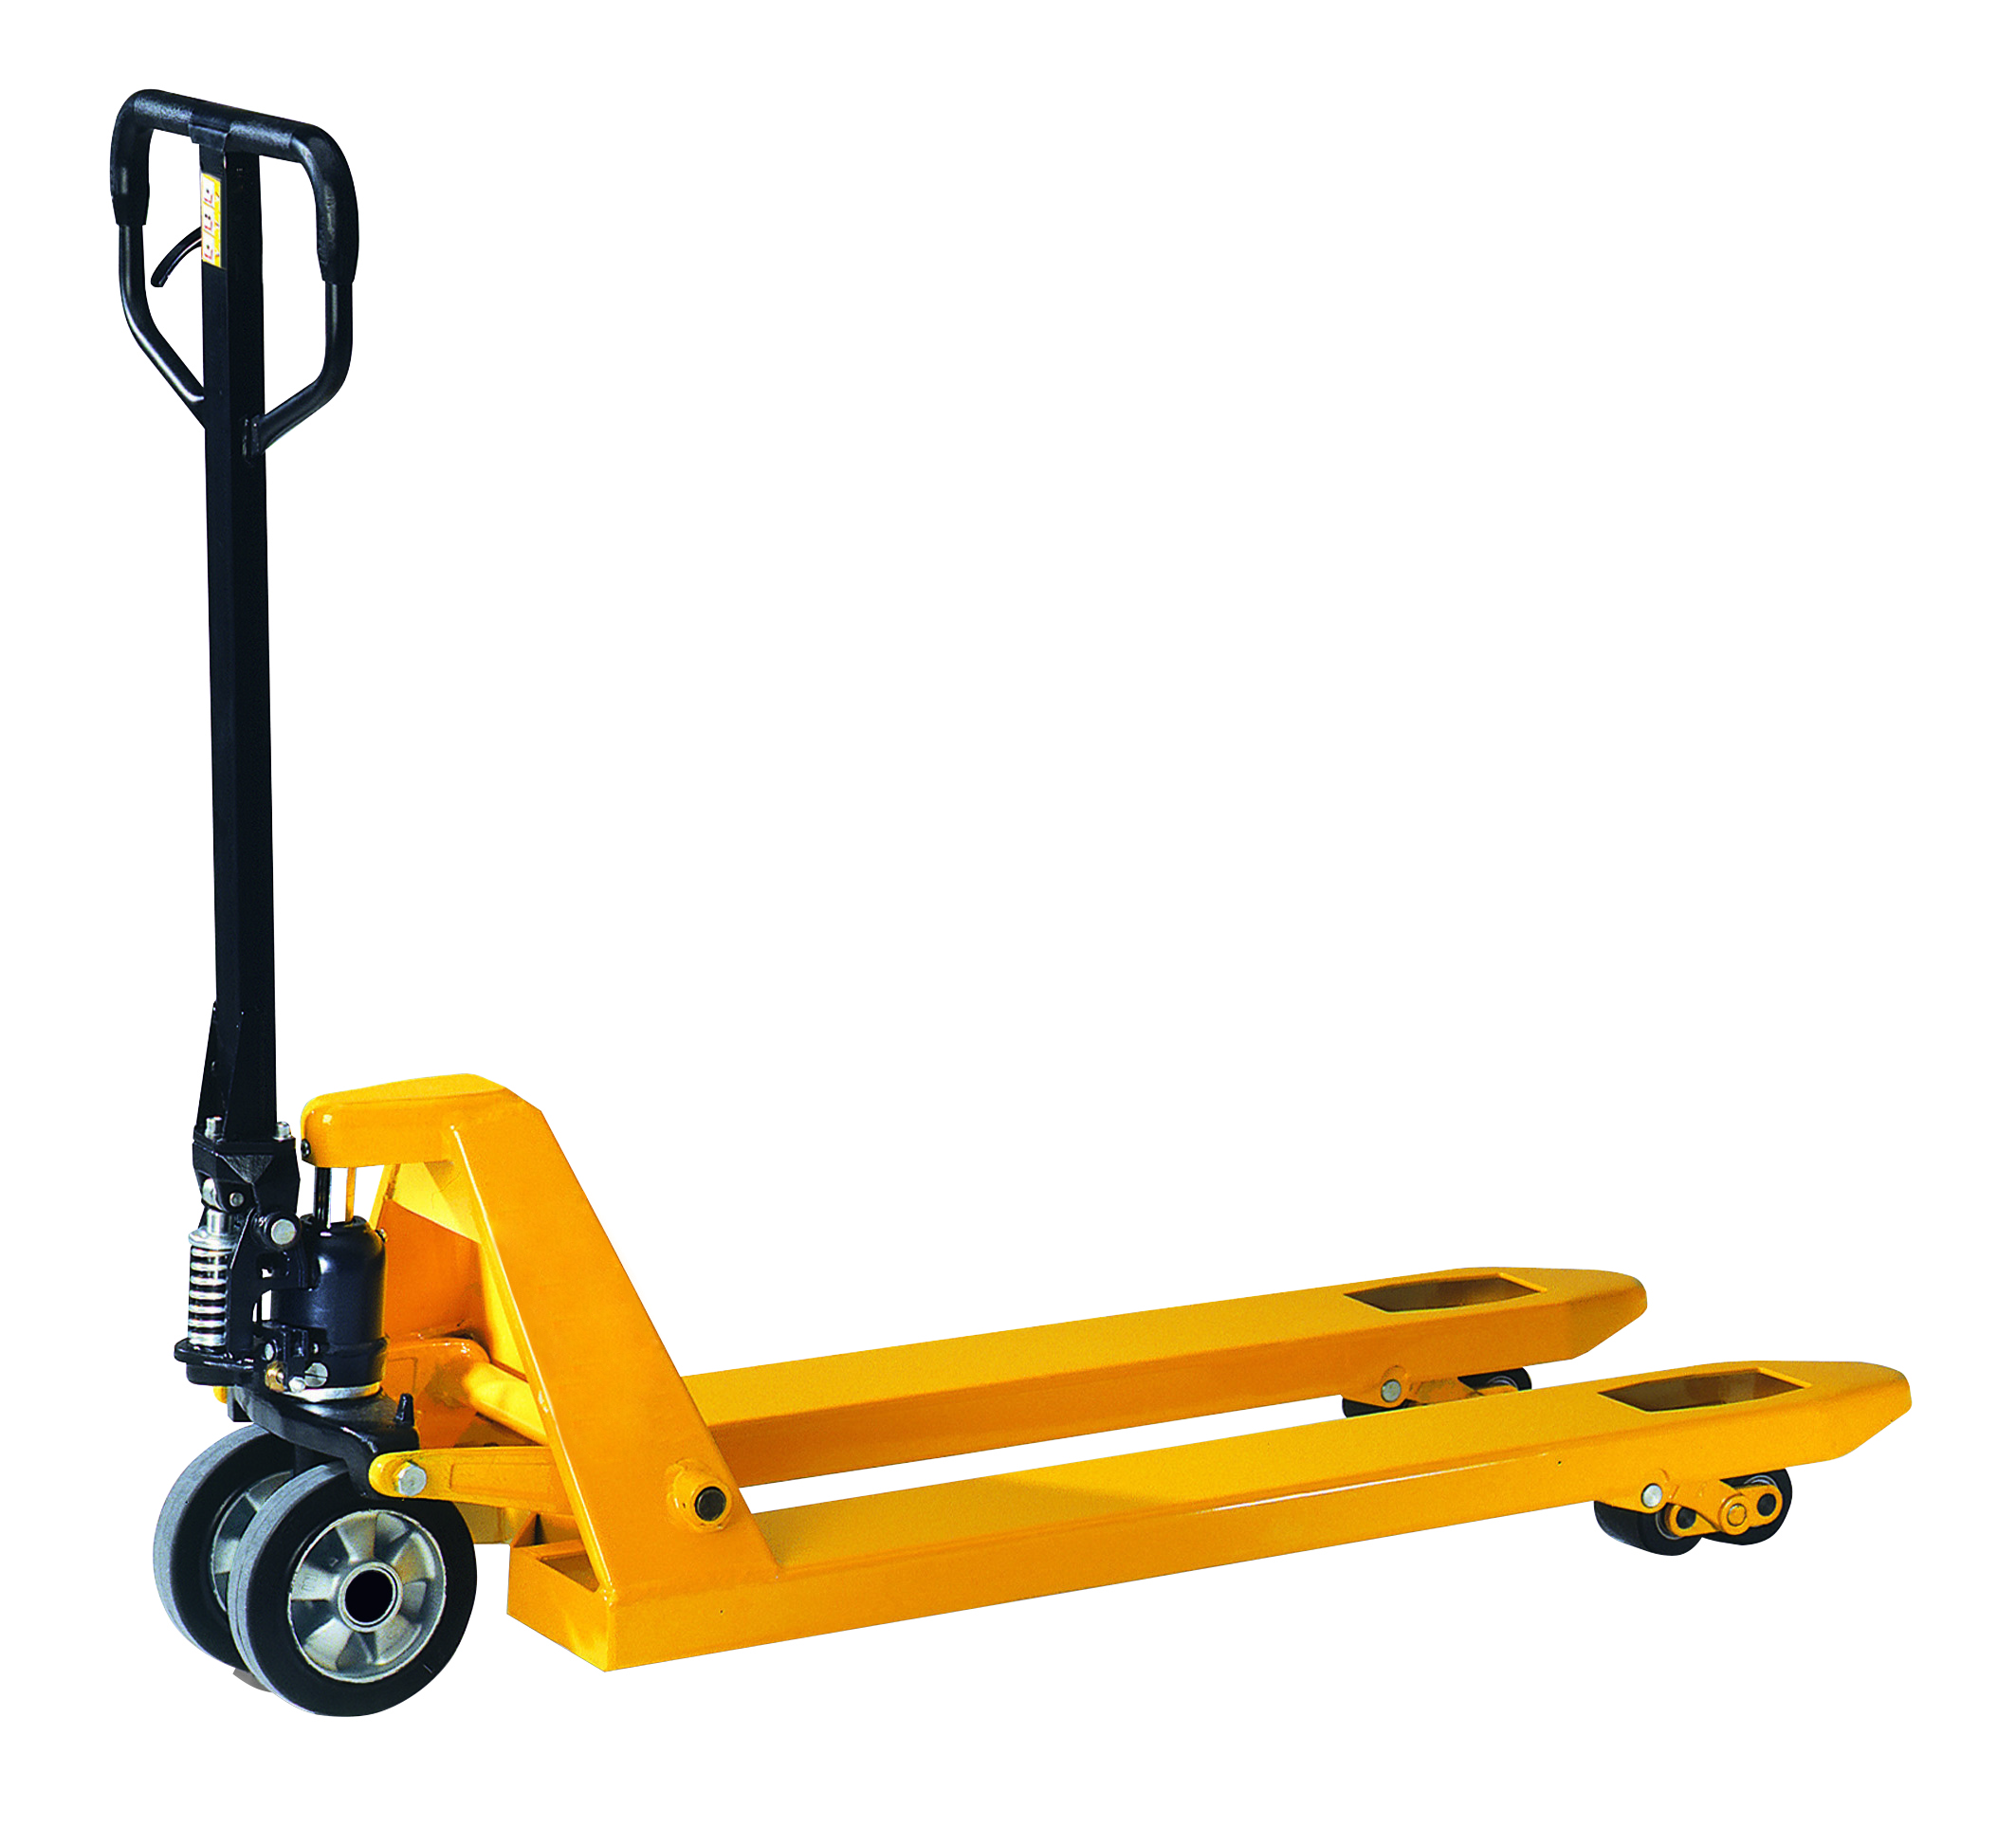 Pallet Truck Lifting And Handling Northern Ireland